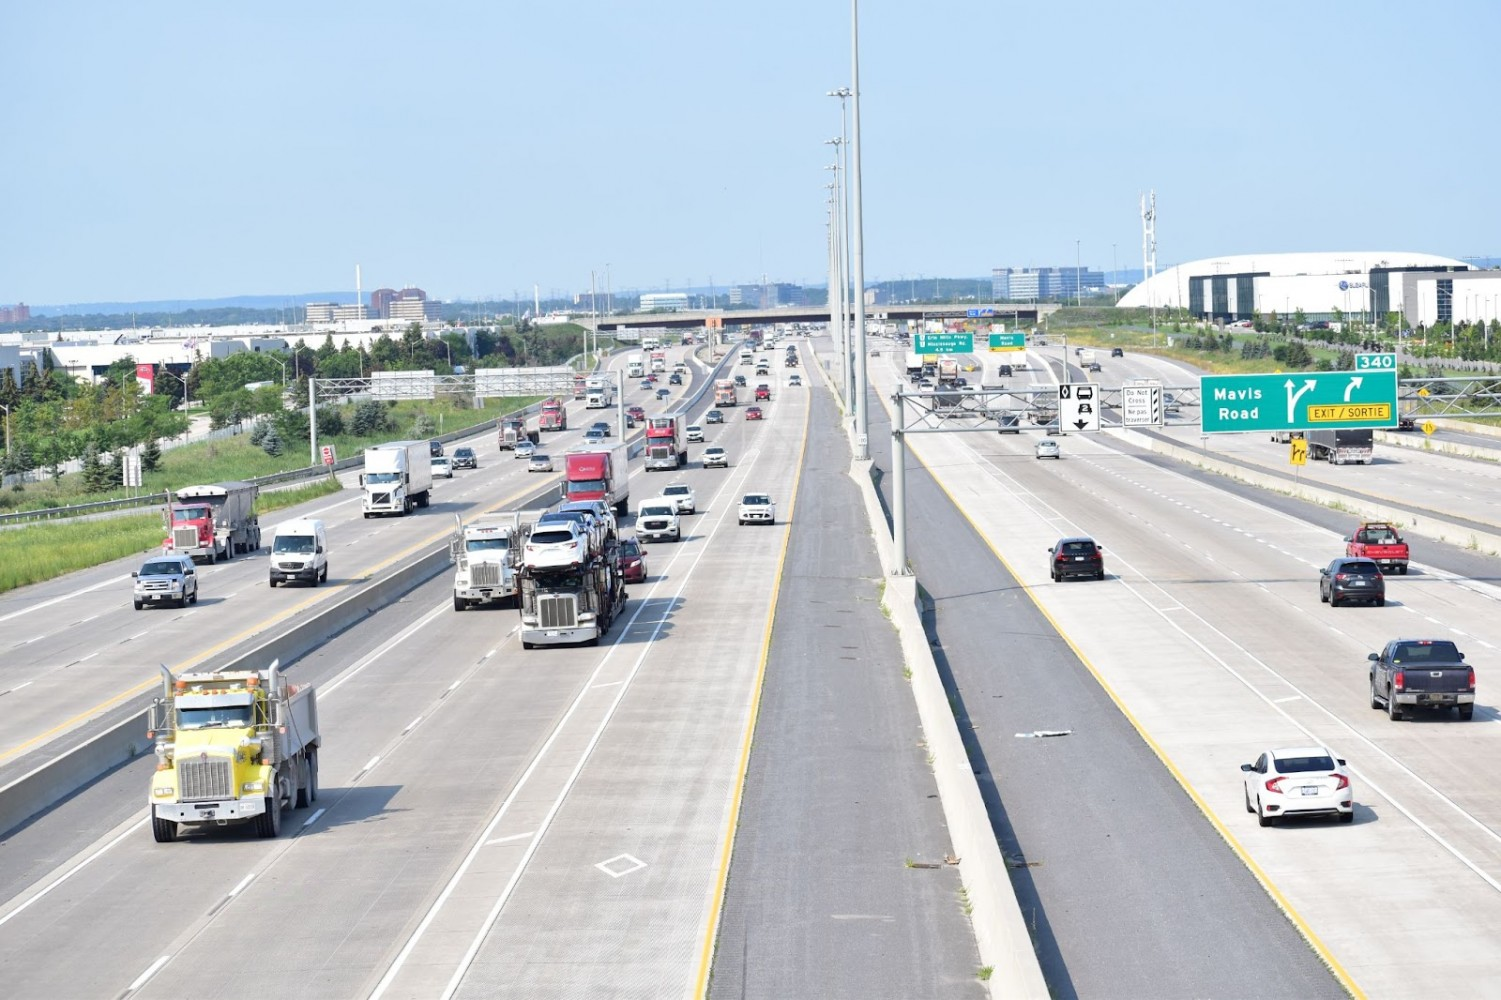 Province ignores public input & expert research in its plodding plan for future transportation